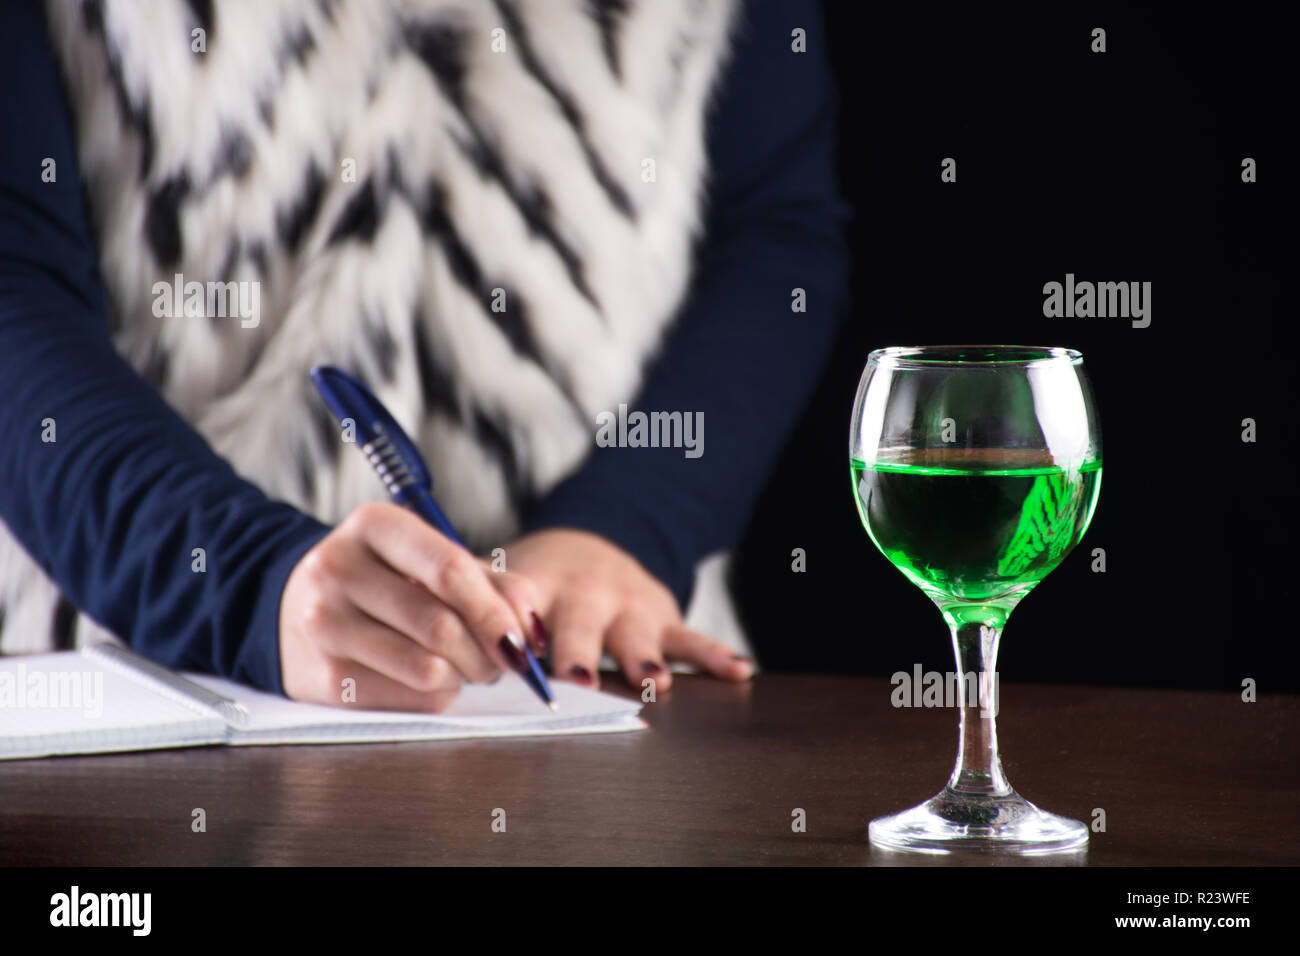 Absinthe green drink in glass and woman writing story notebook in background on old retro wooden desk. Green fairy inspiration and muse for writer - Stock Image